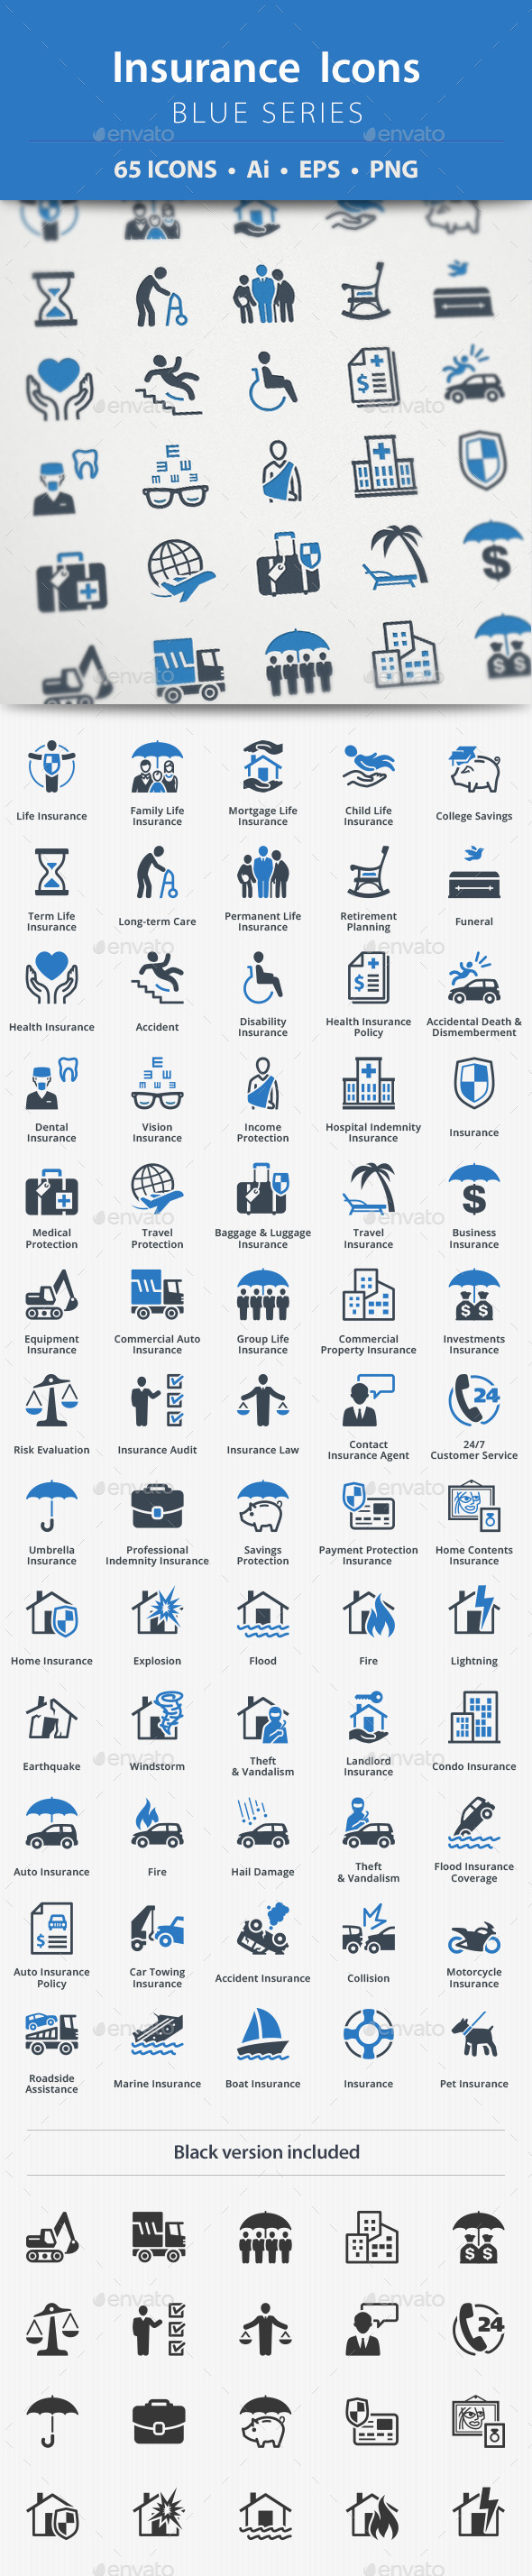 Insurance Icons Blue Series